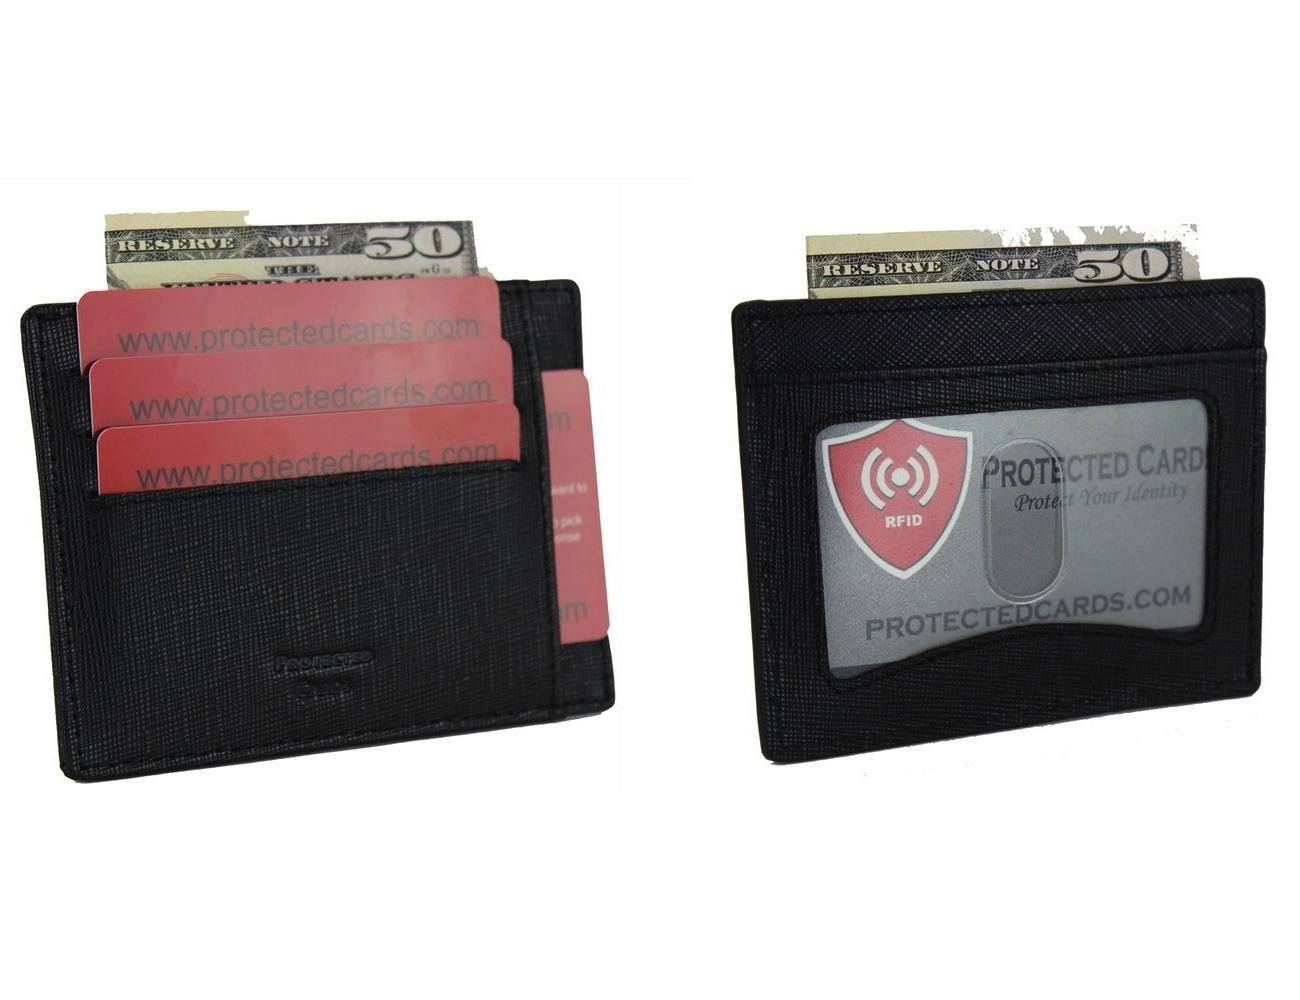 Offered in 2 different Styles, original and I.D. holder. Original style has 4 card slots on each side and opens like a V in the middle to hold cash, where the I.D. window style has 4 card slots and 1 I.D. window as well as the V in the middle.